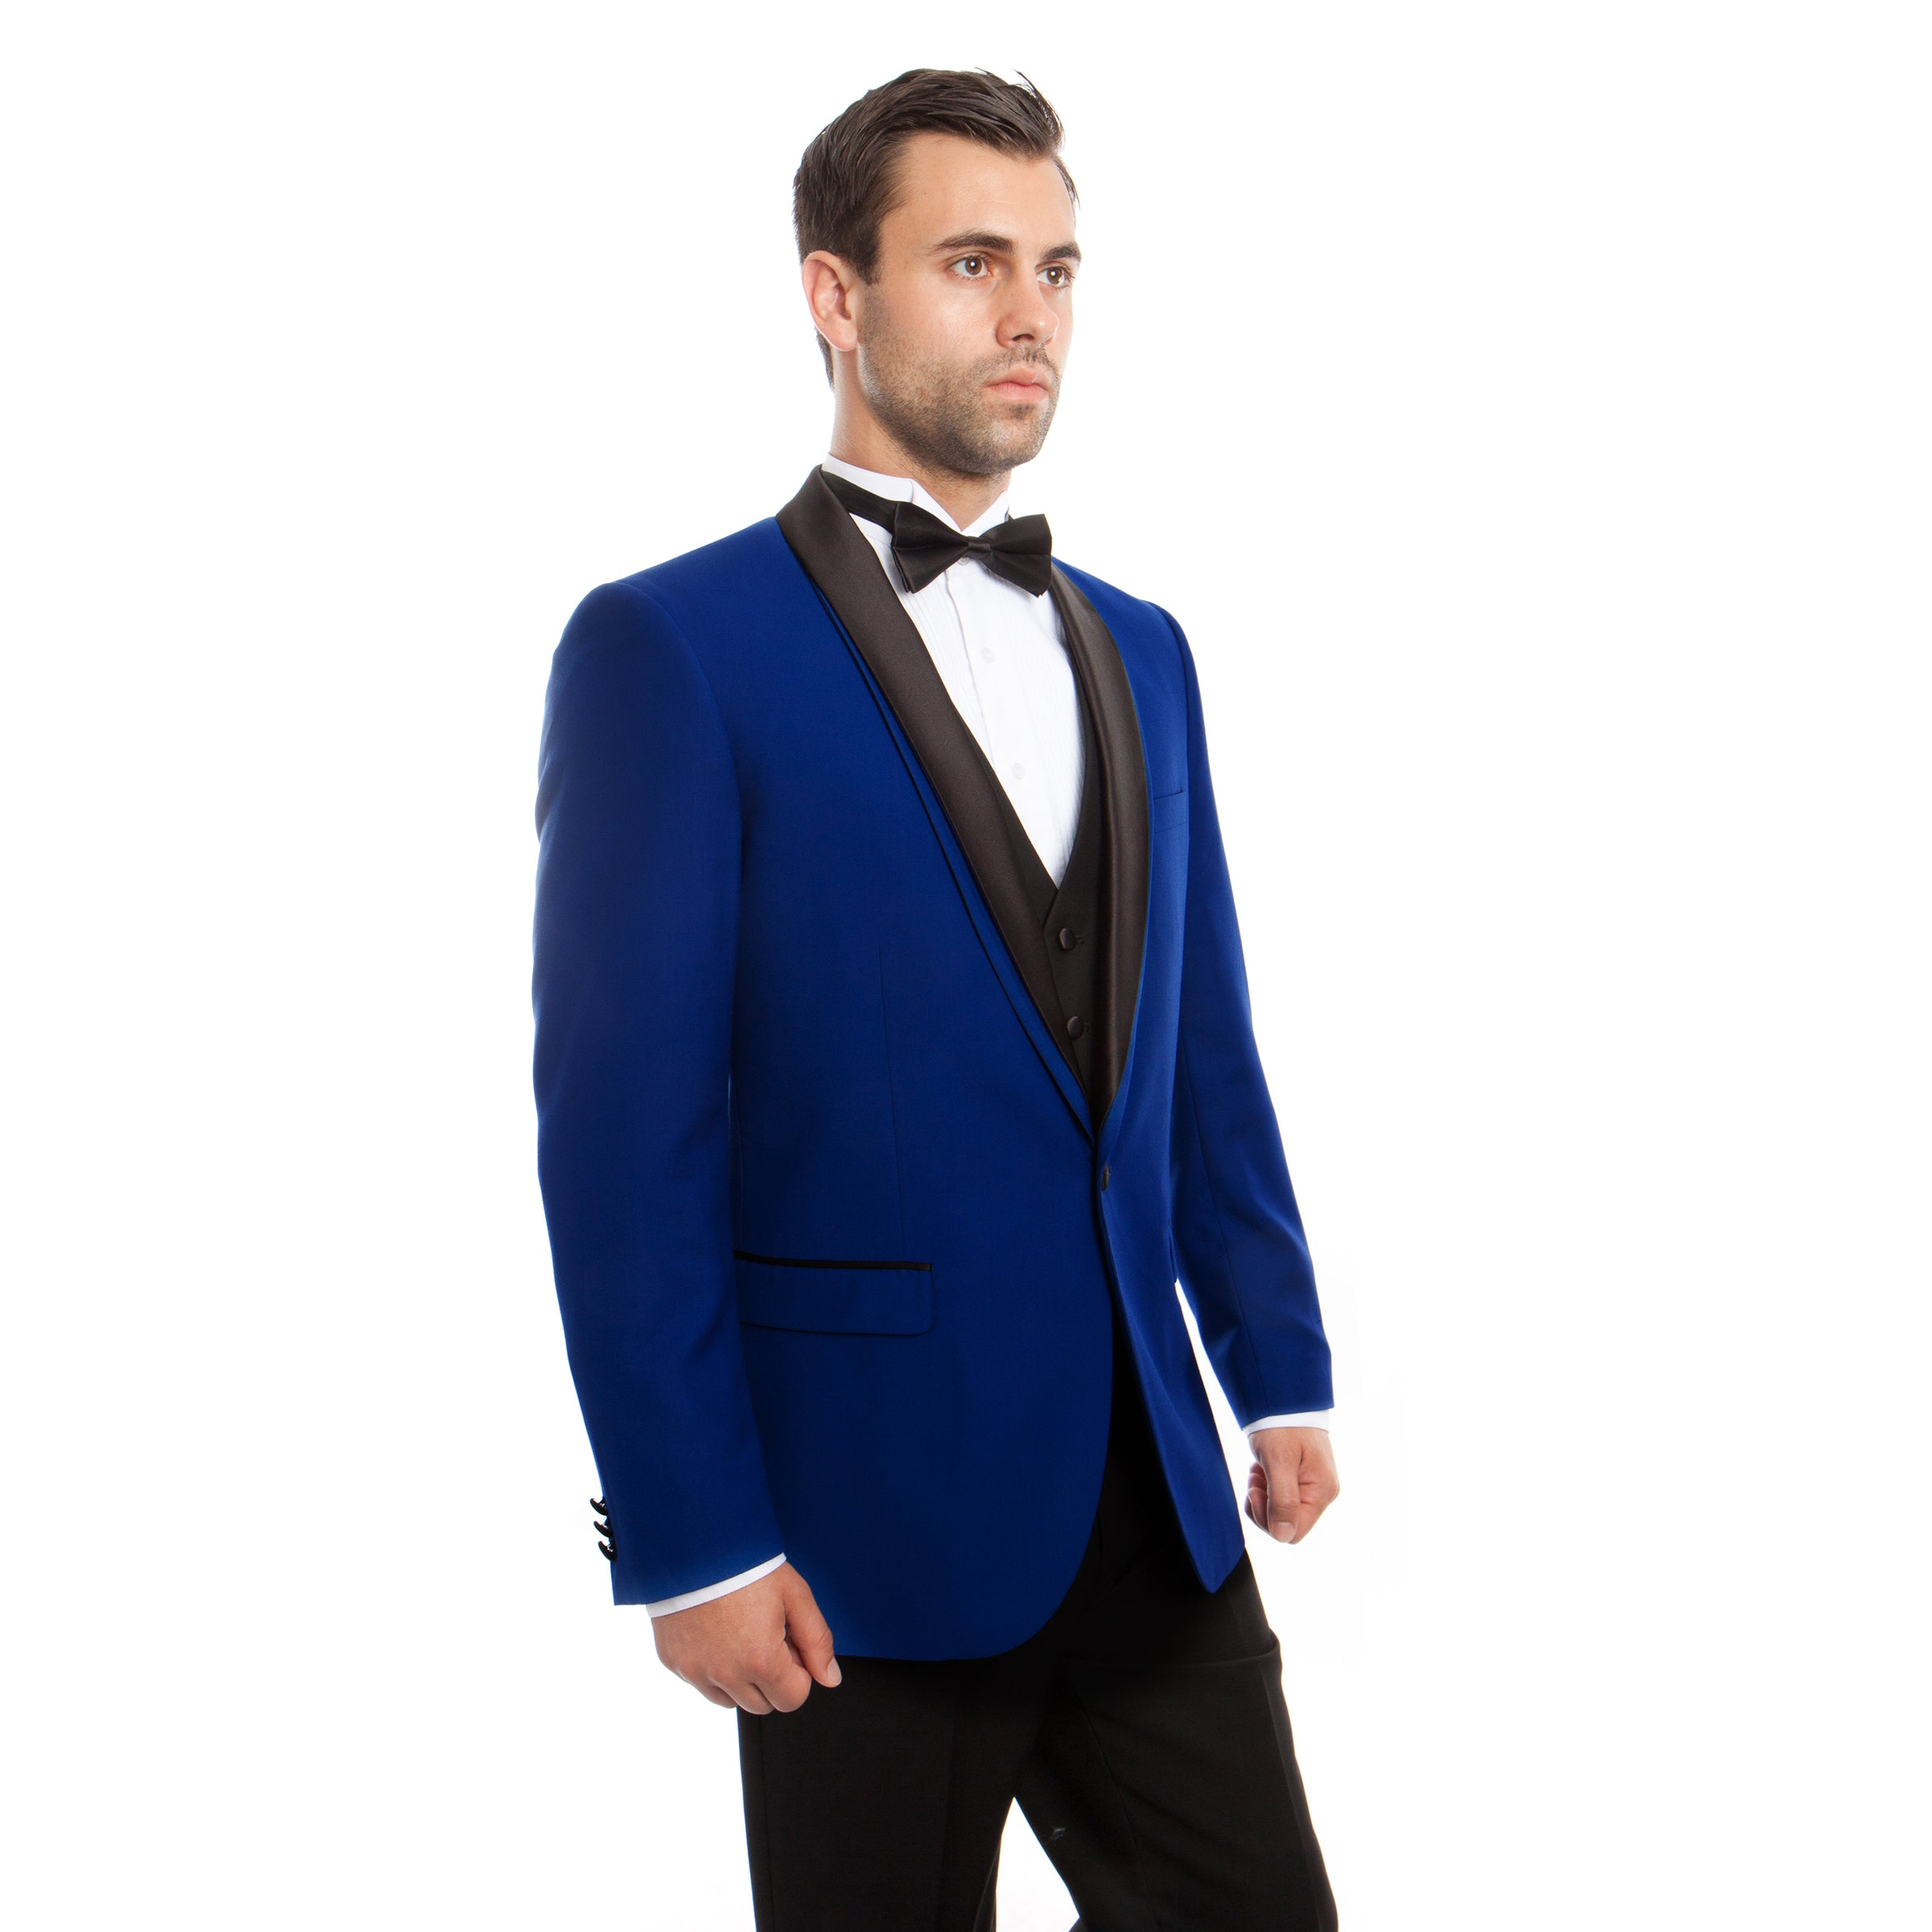 Shawl Collar Tuxedo Solid Slim Fit Prom Tuxedos For Men